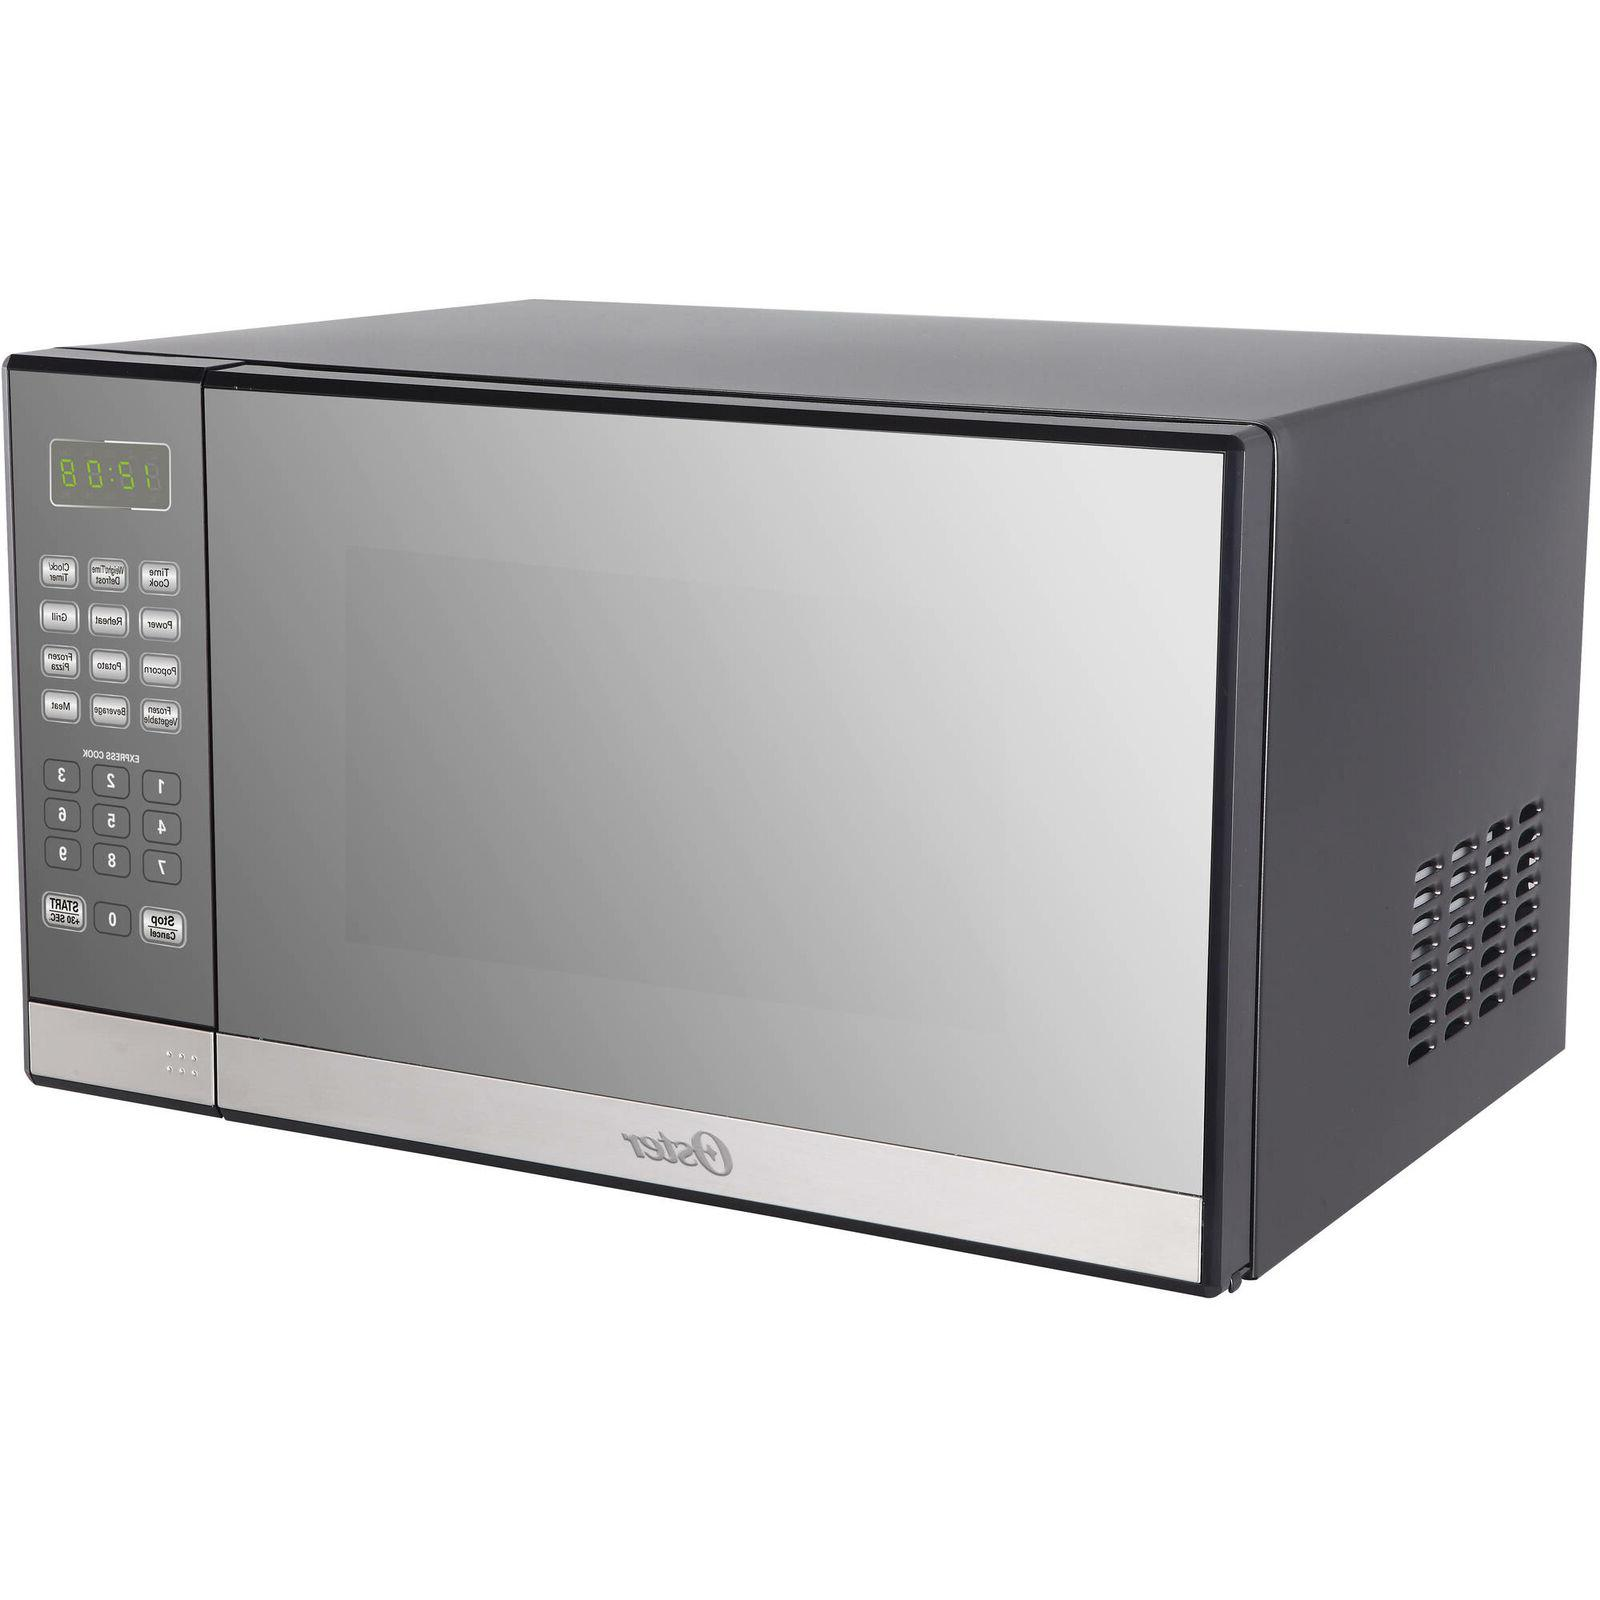 Oster Microwave Stainless Steel 1.3